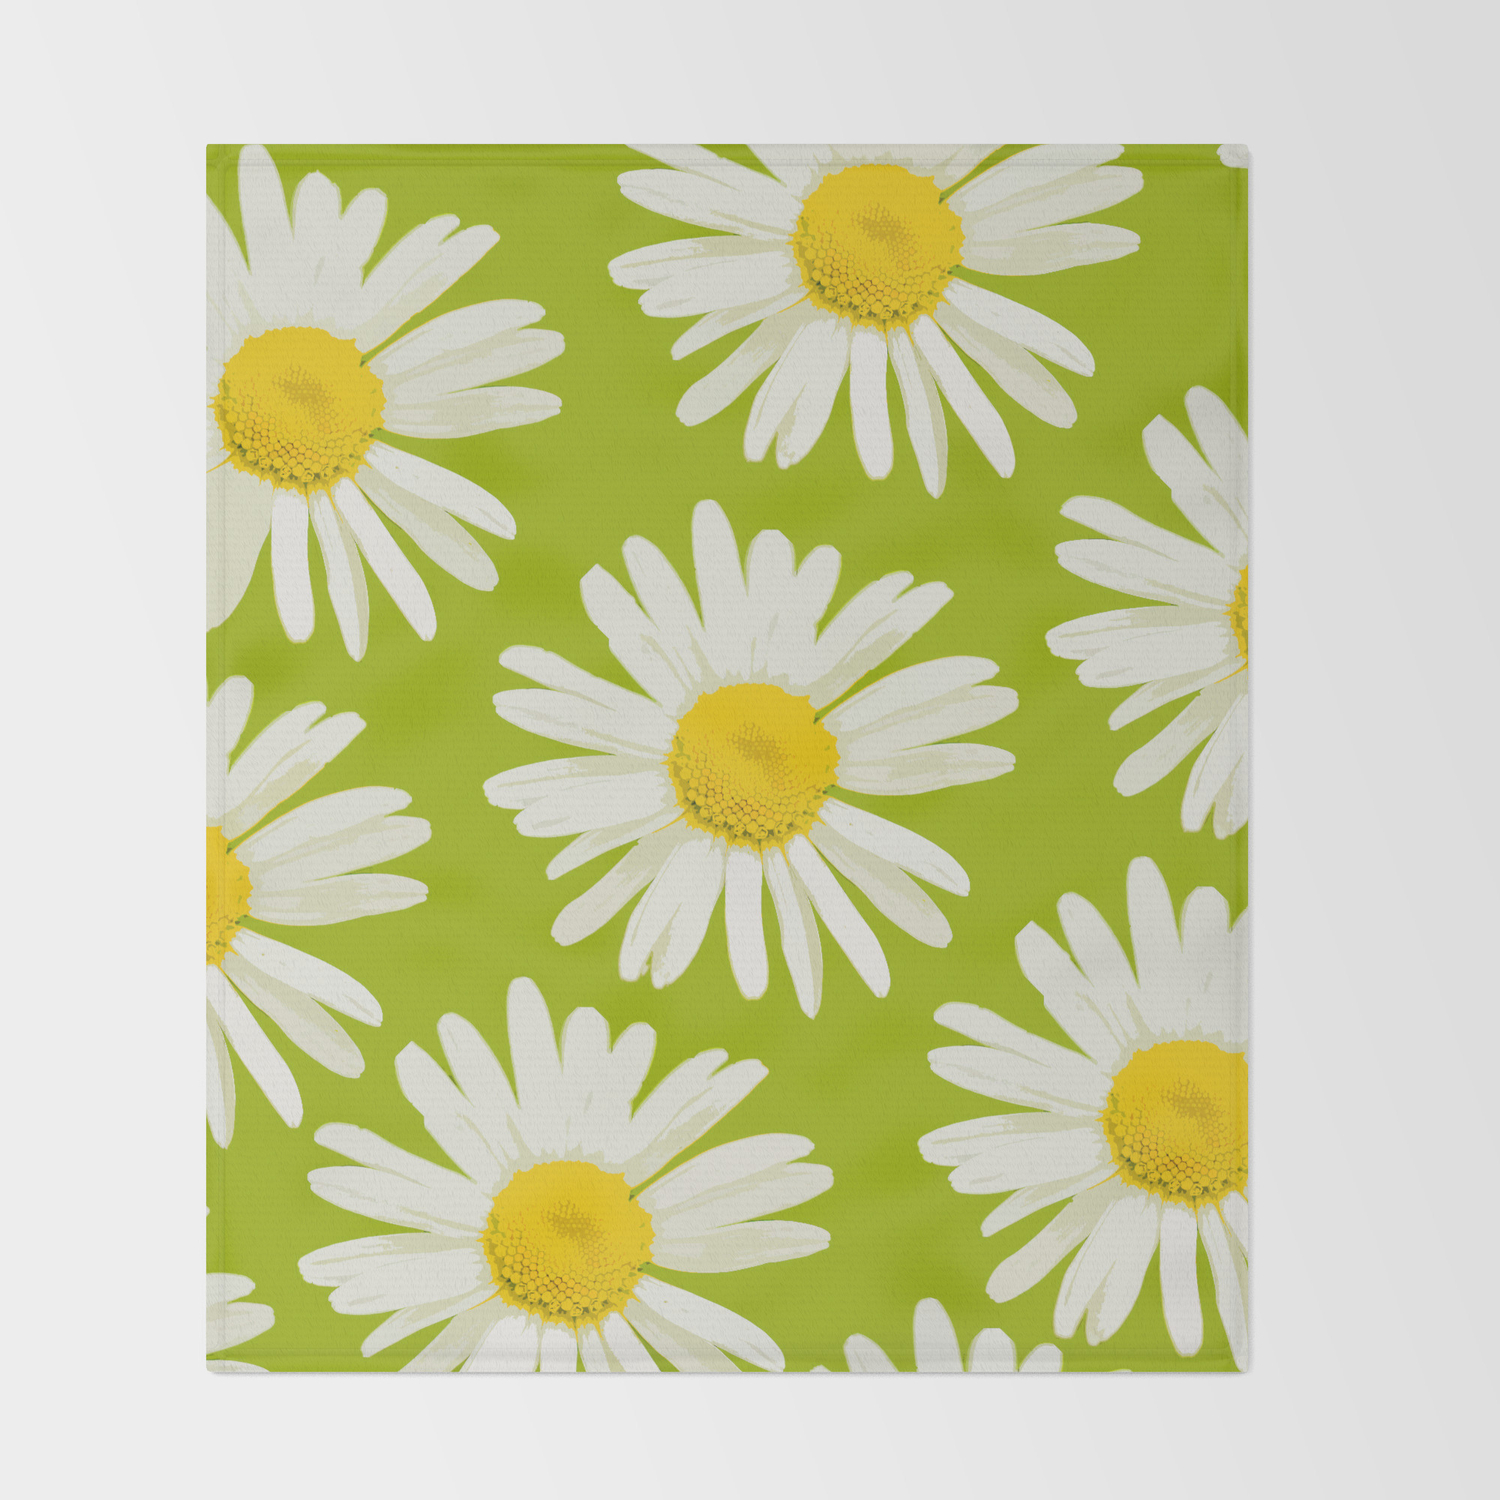 Daisies On A Vivid Green Background Decor Society6 Buyart Throw Blanket By Pivivikstrm Society6